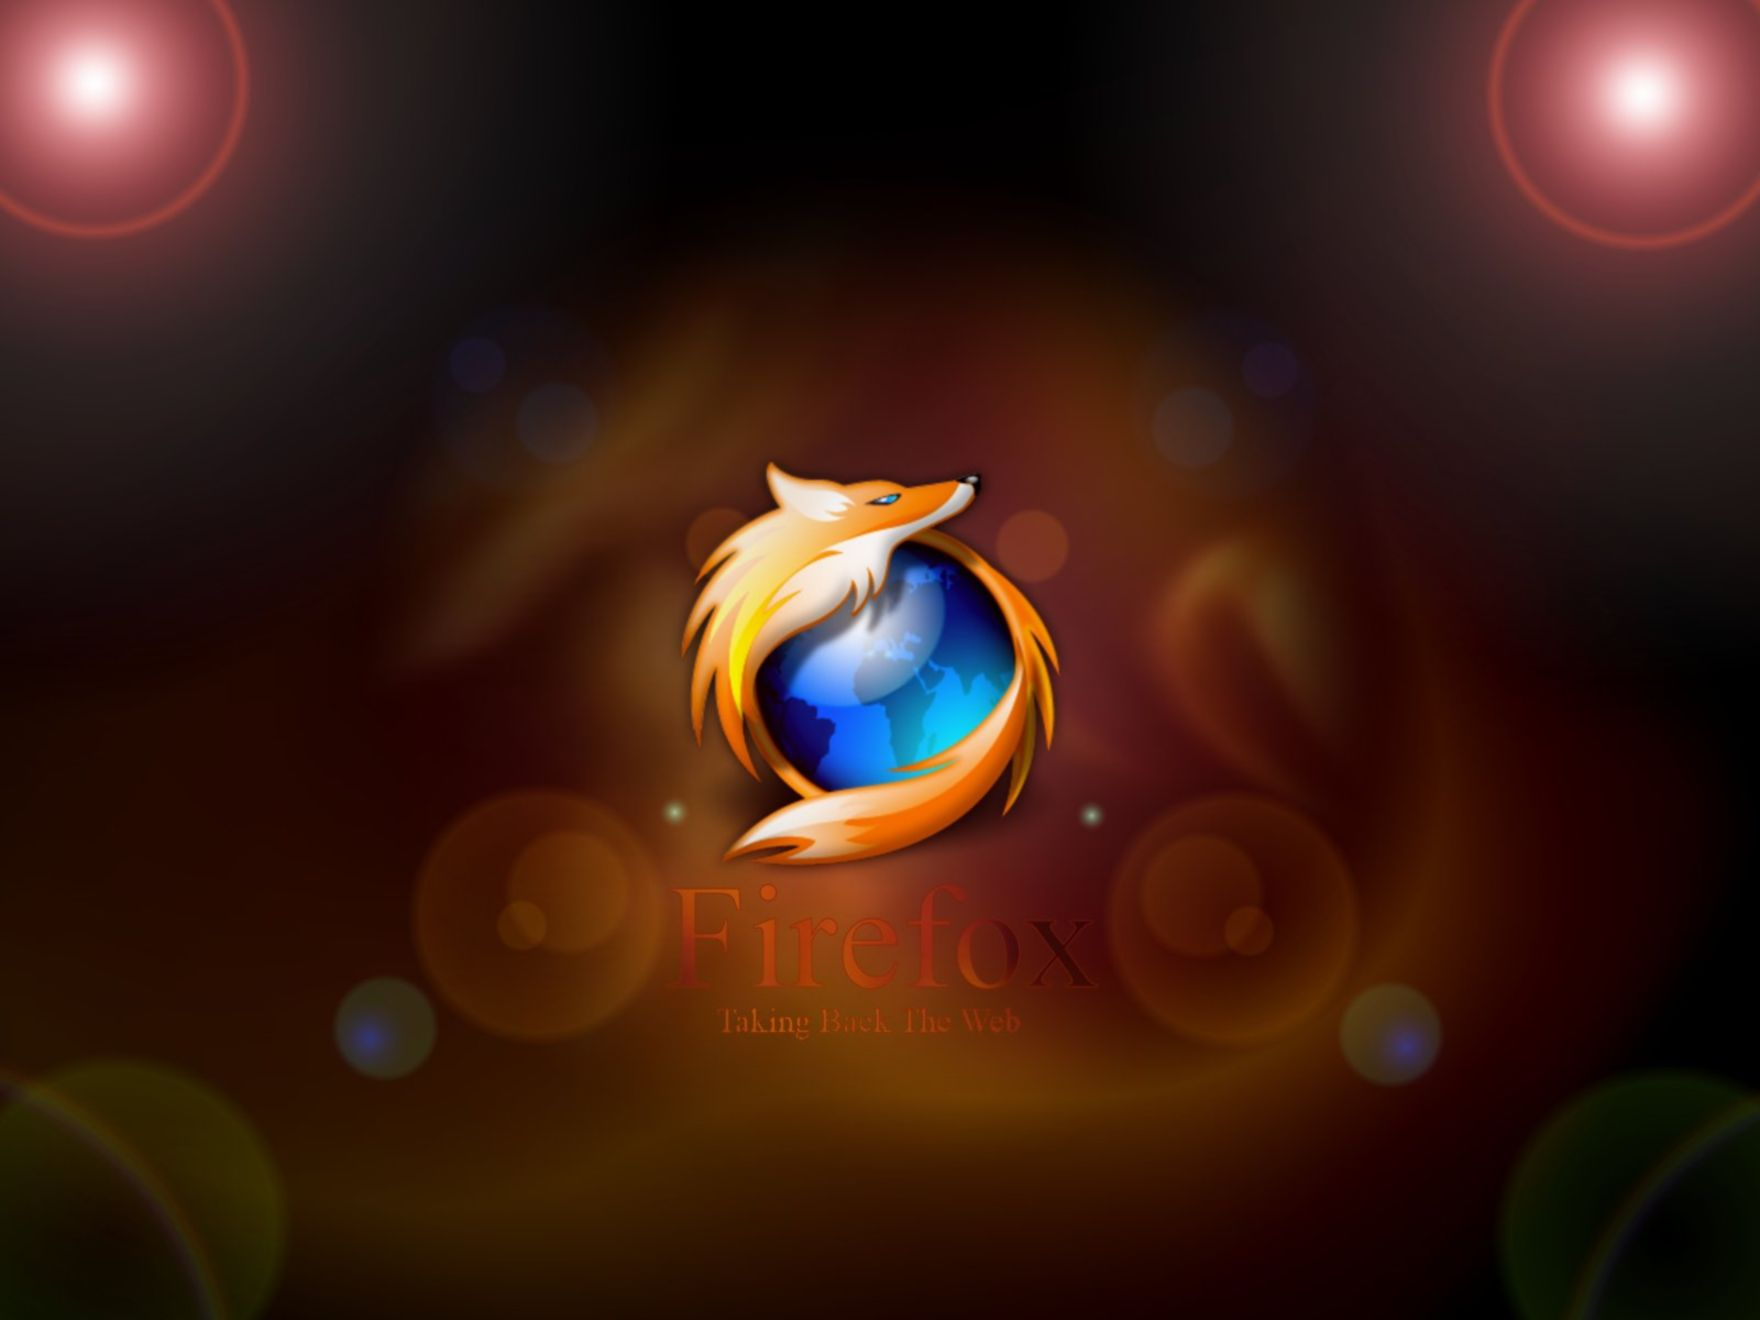 Download free HD Firefox High Quality Normal Wallpaper, image